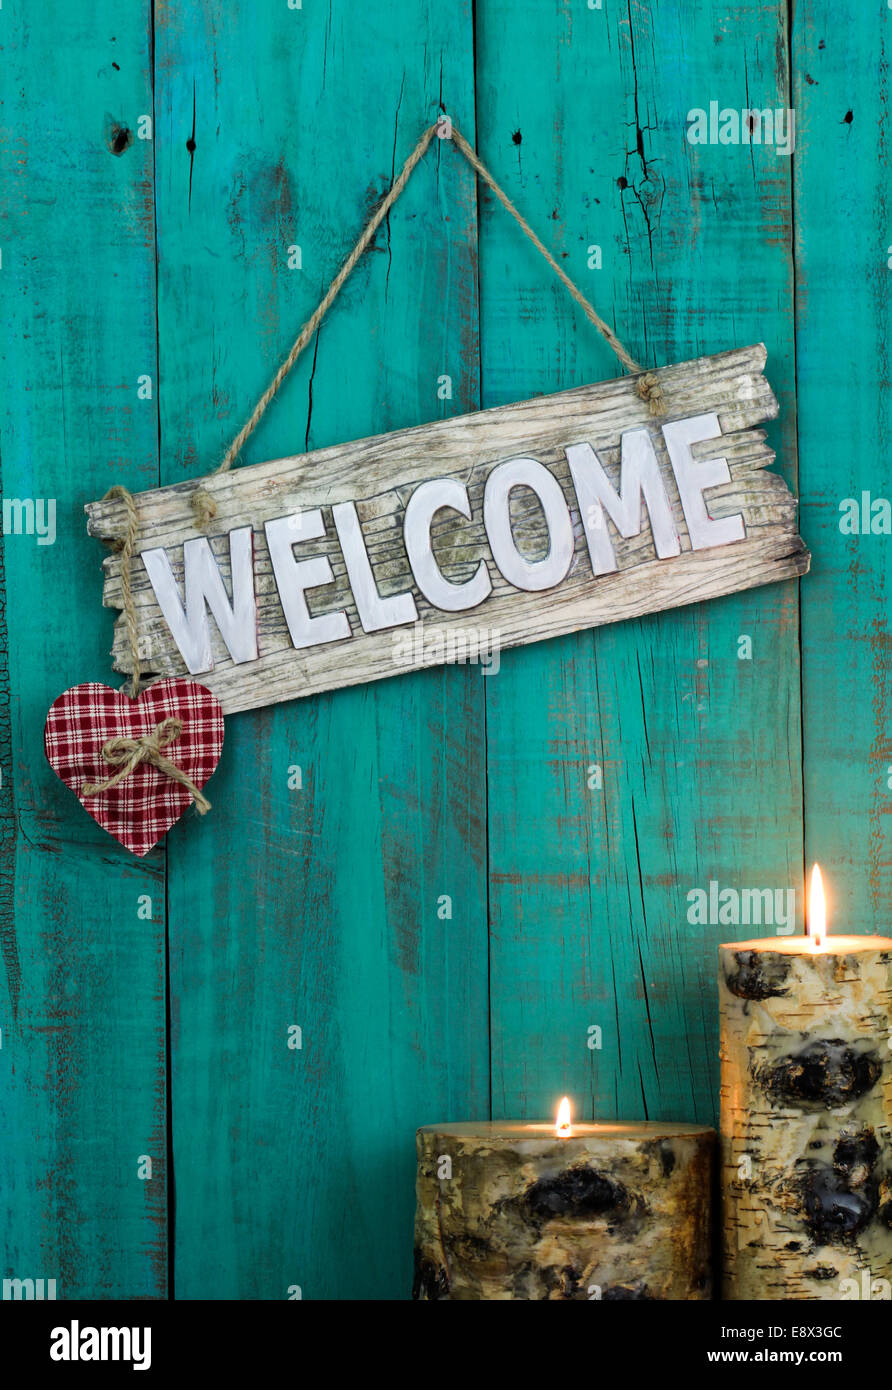 Wooden welcome sign with red plaid heart and burning candles hanging on antique teal blue weathered background - Stock Image